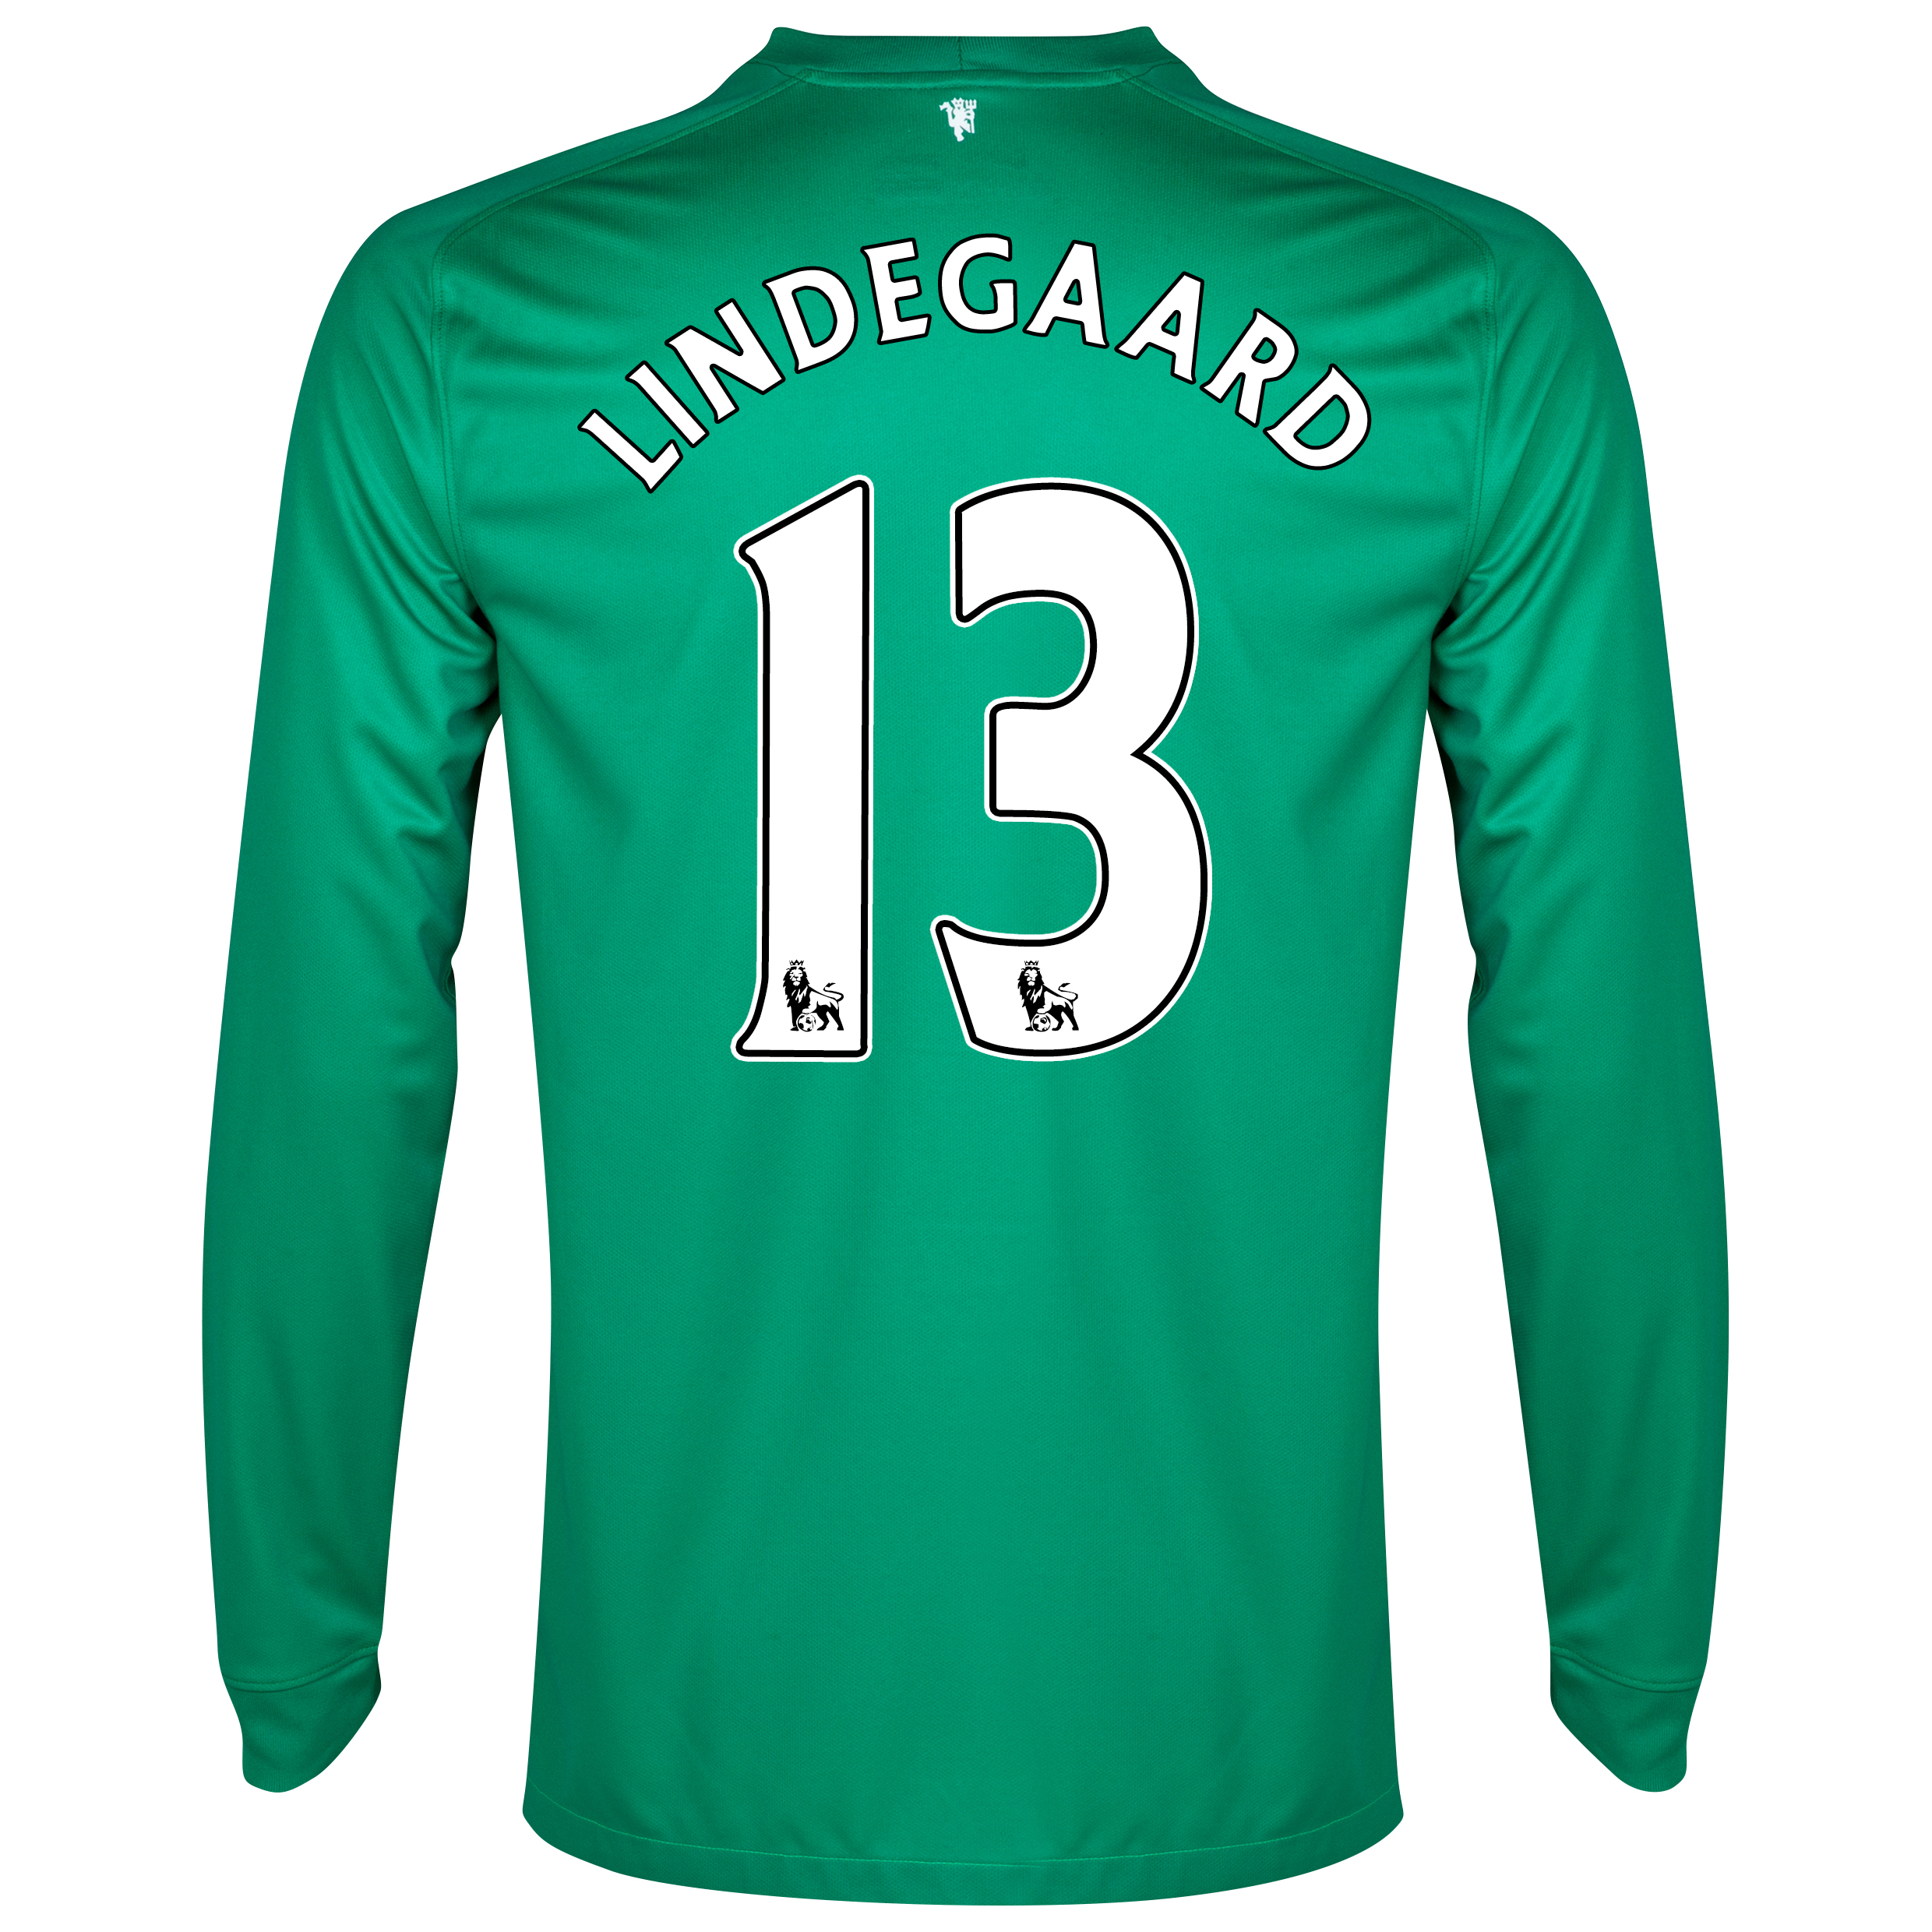 Manchester United Goalkeeper Shirt 2014/15 - Kids with Lindegaard 13 printing